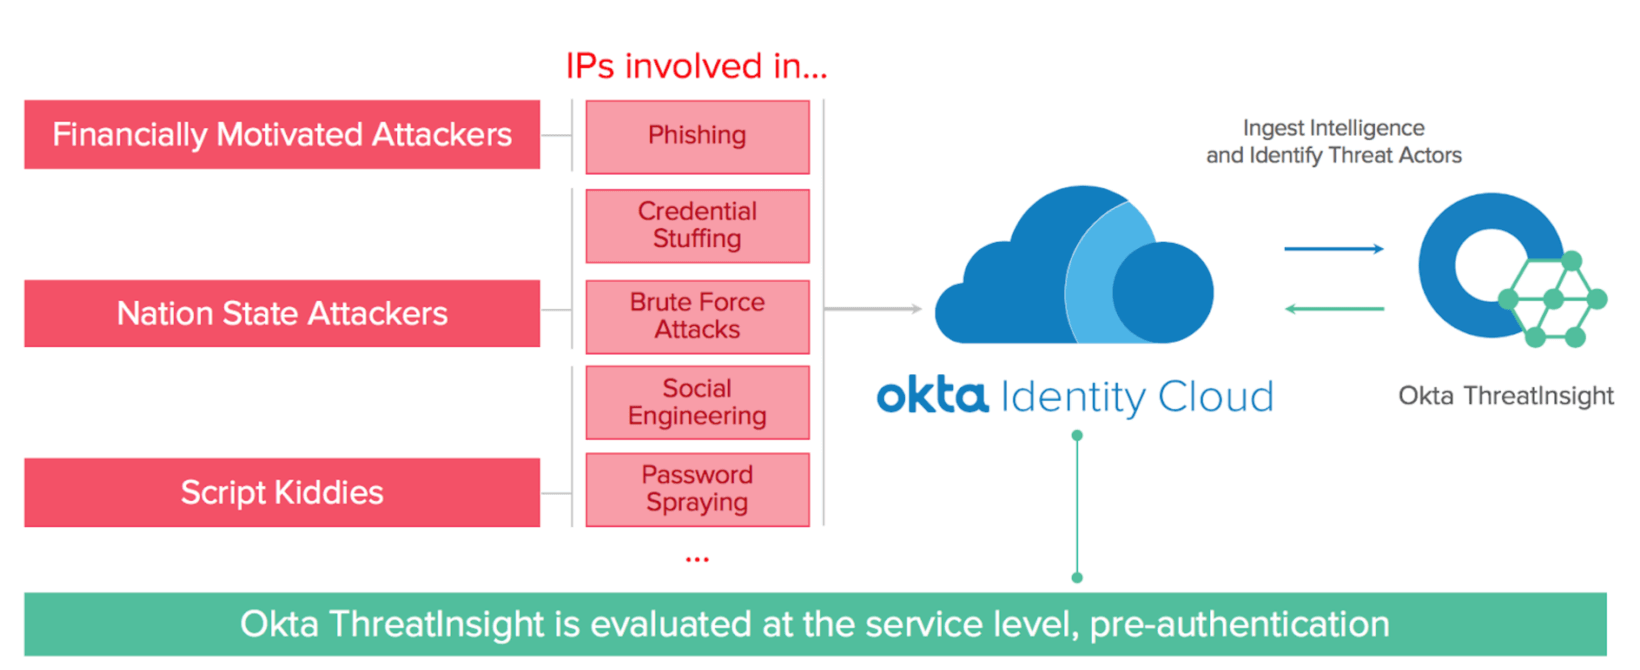 Use Okta ThreatInsight to prevent large scale identity attacks